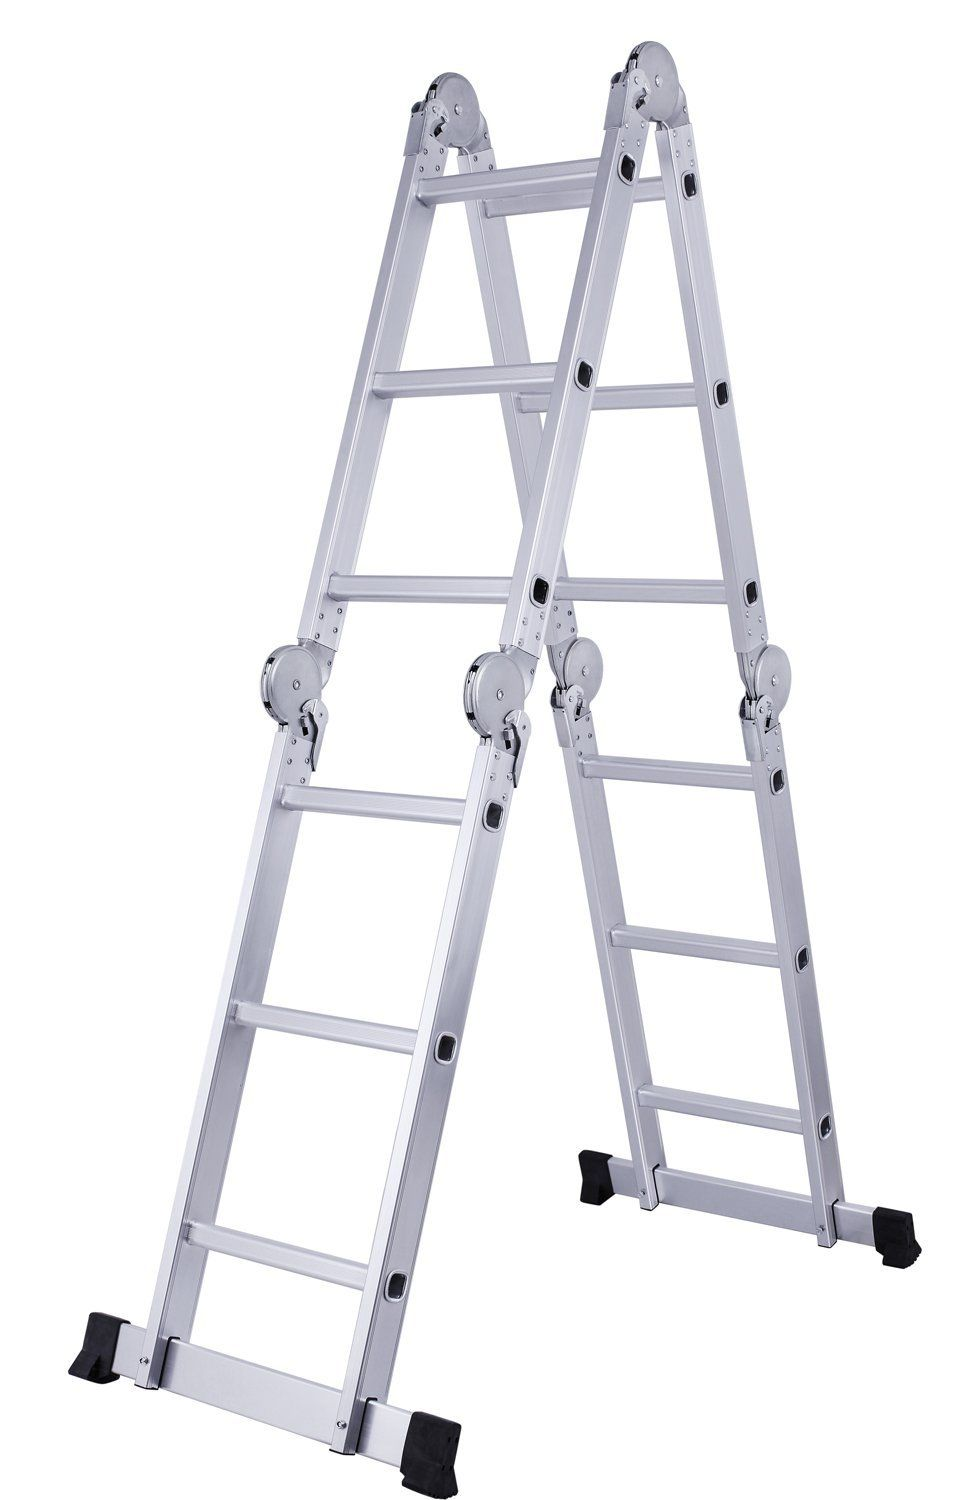 Flat 40 Off Buy High Quality Multipurpose Folding Aluminium Ladder Online Exclusively On Amazon Https Amzn To 2ehjvhy Aluminium Ladder Step Ladders Ladder